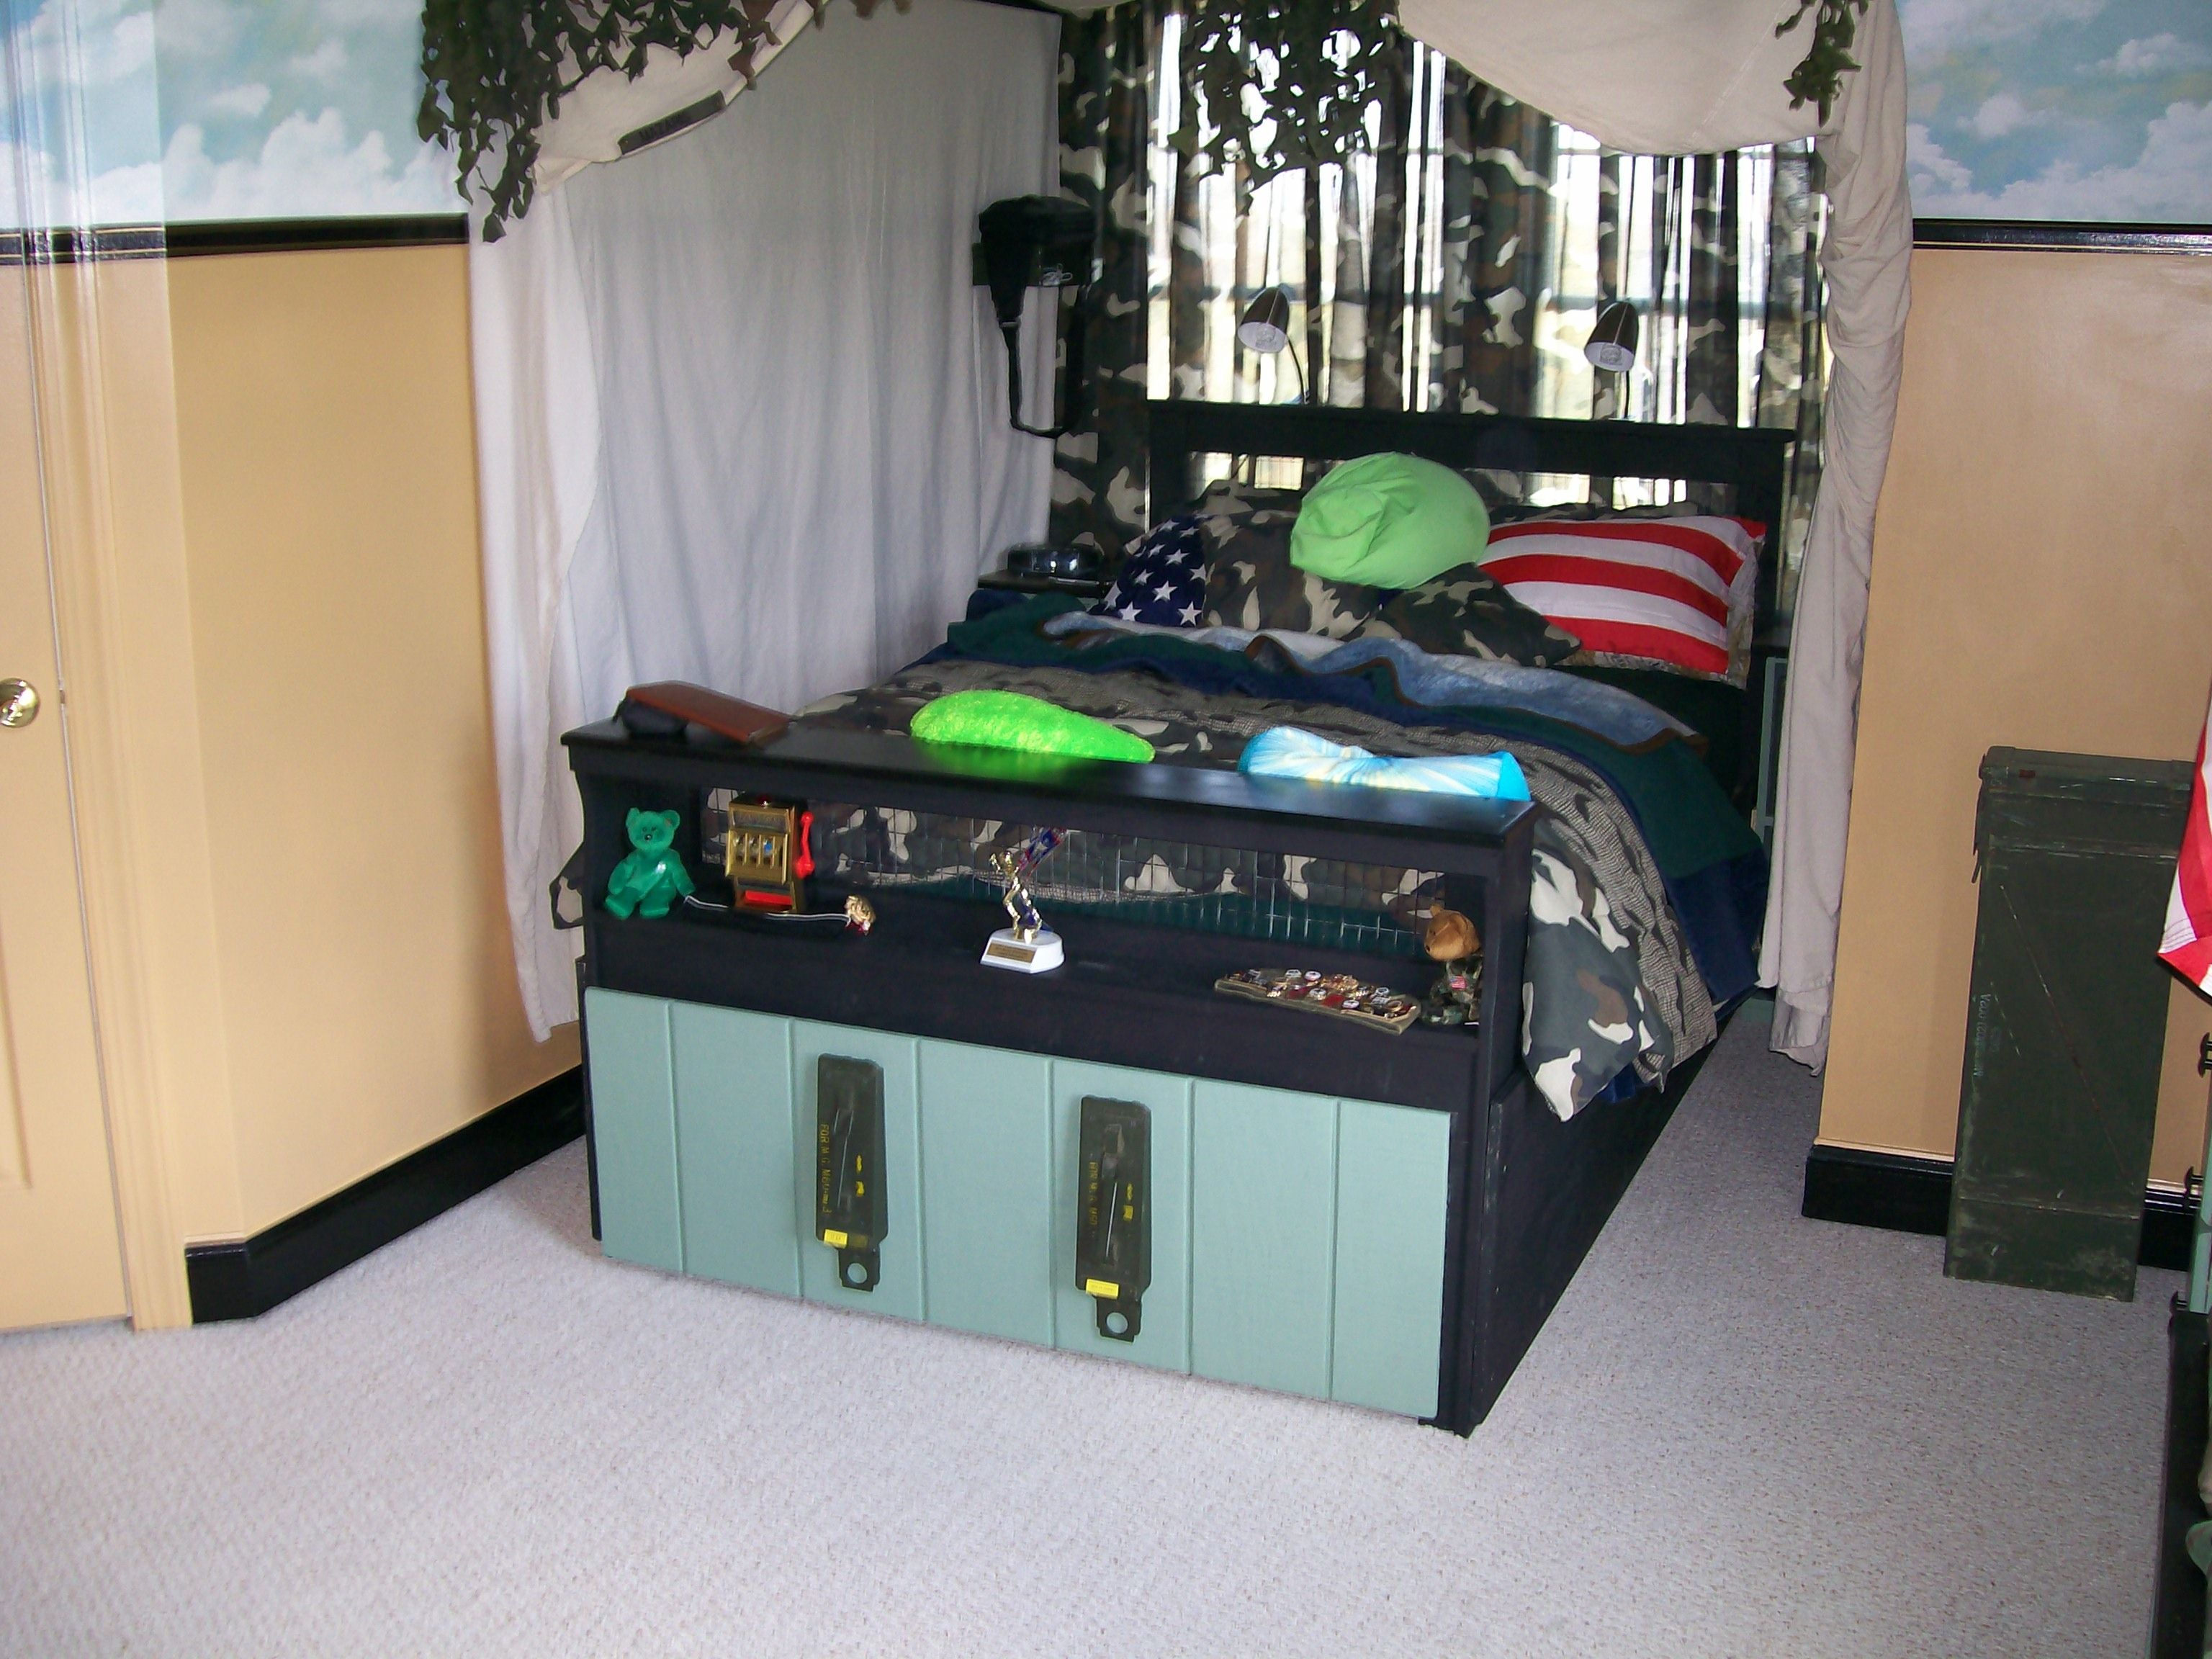 Boat Bed With Trundle And Toy Box Storage: Army Trundle Bed...We Took The Existing Headboard And